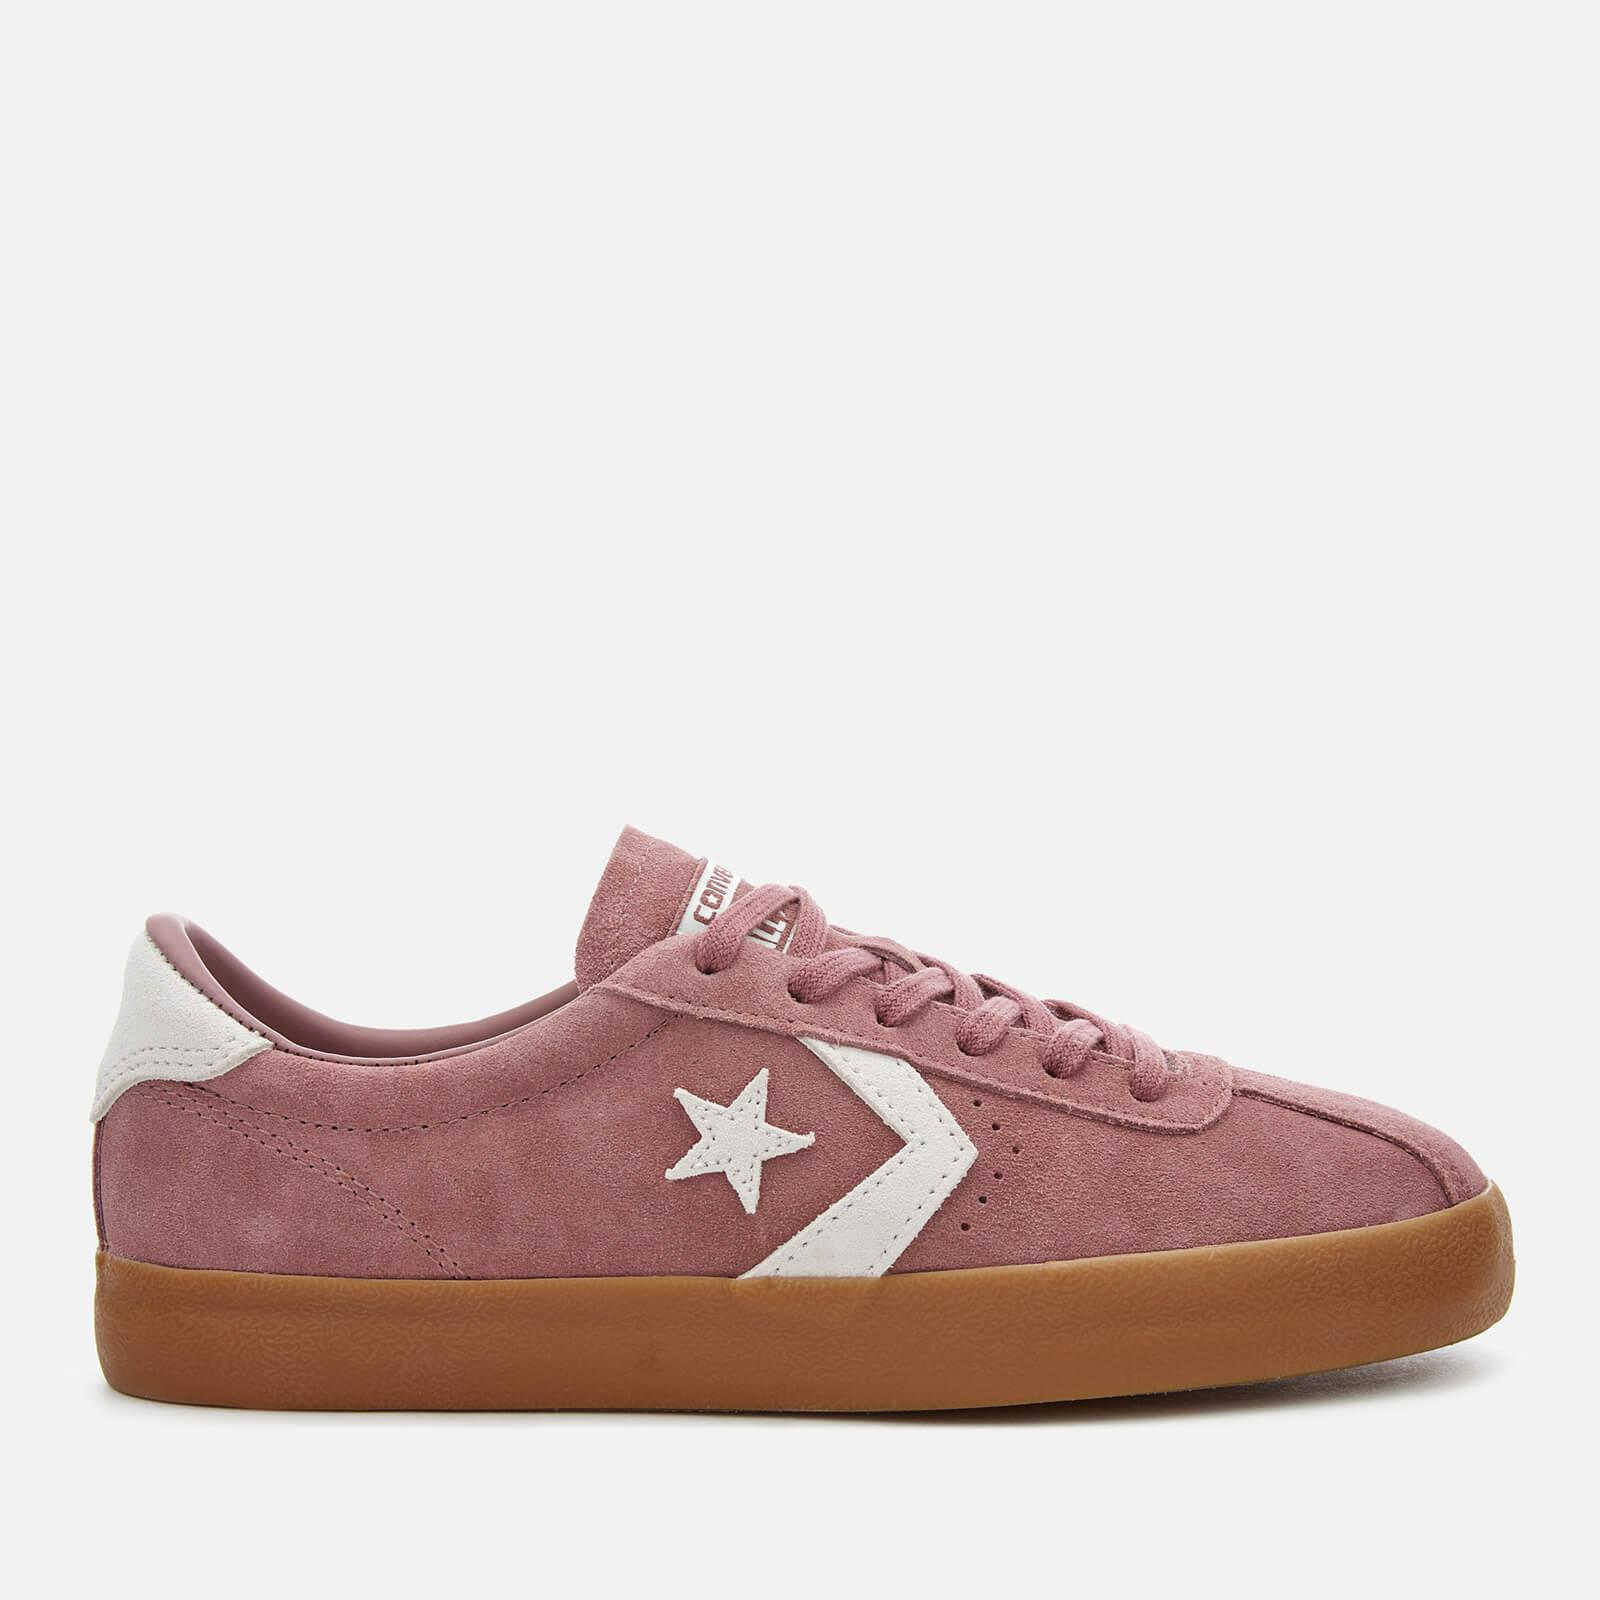 2converse breakpoint ox rosa